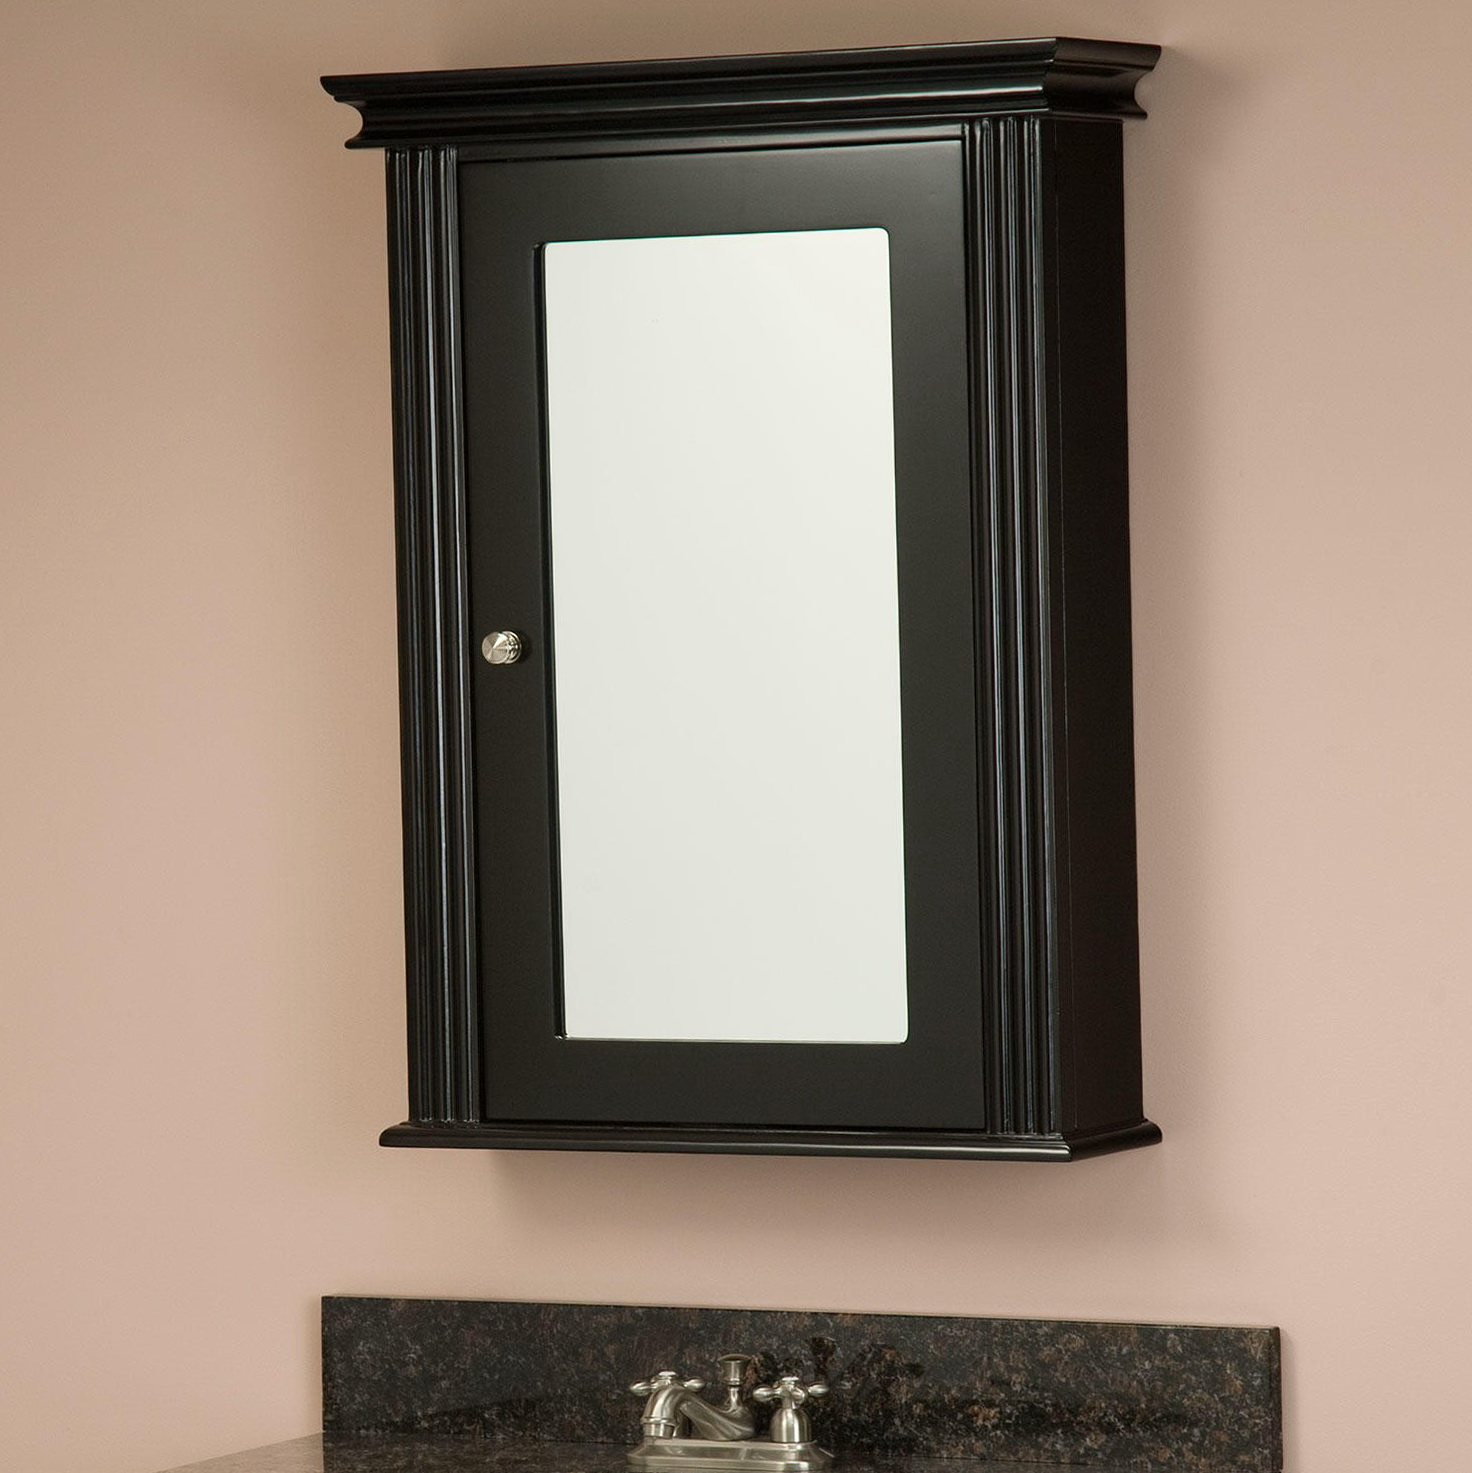 Black Medicine Cabinet With Mirror